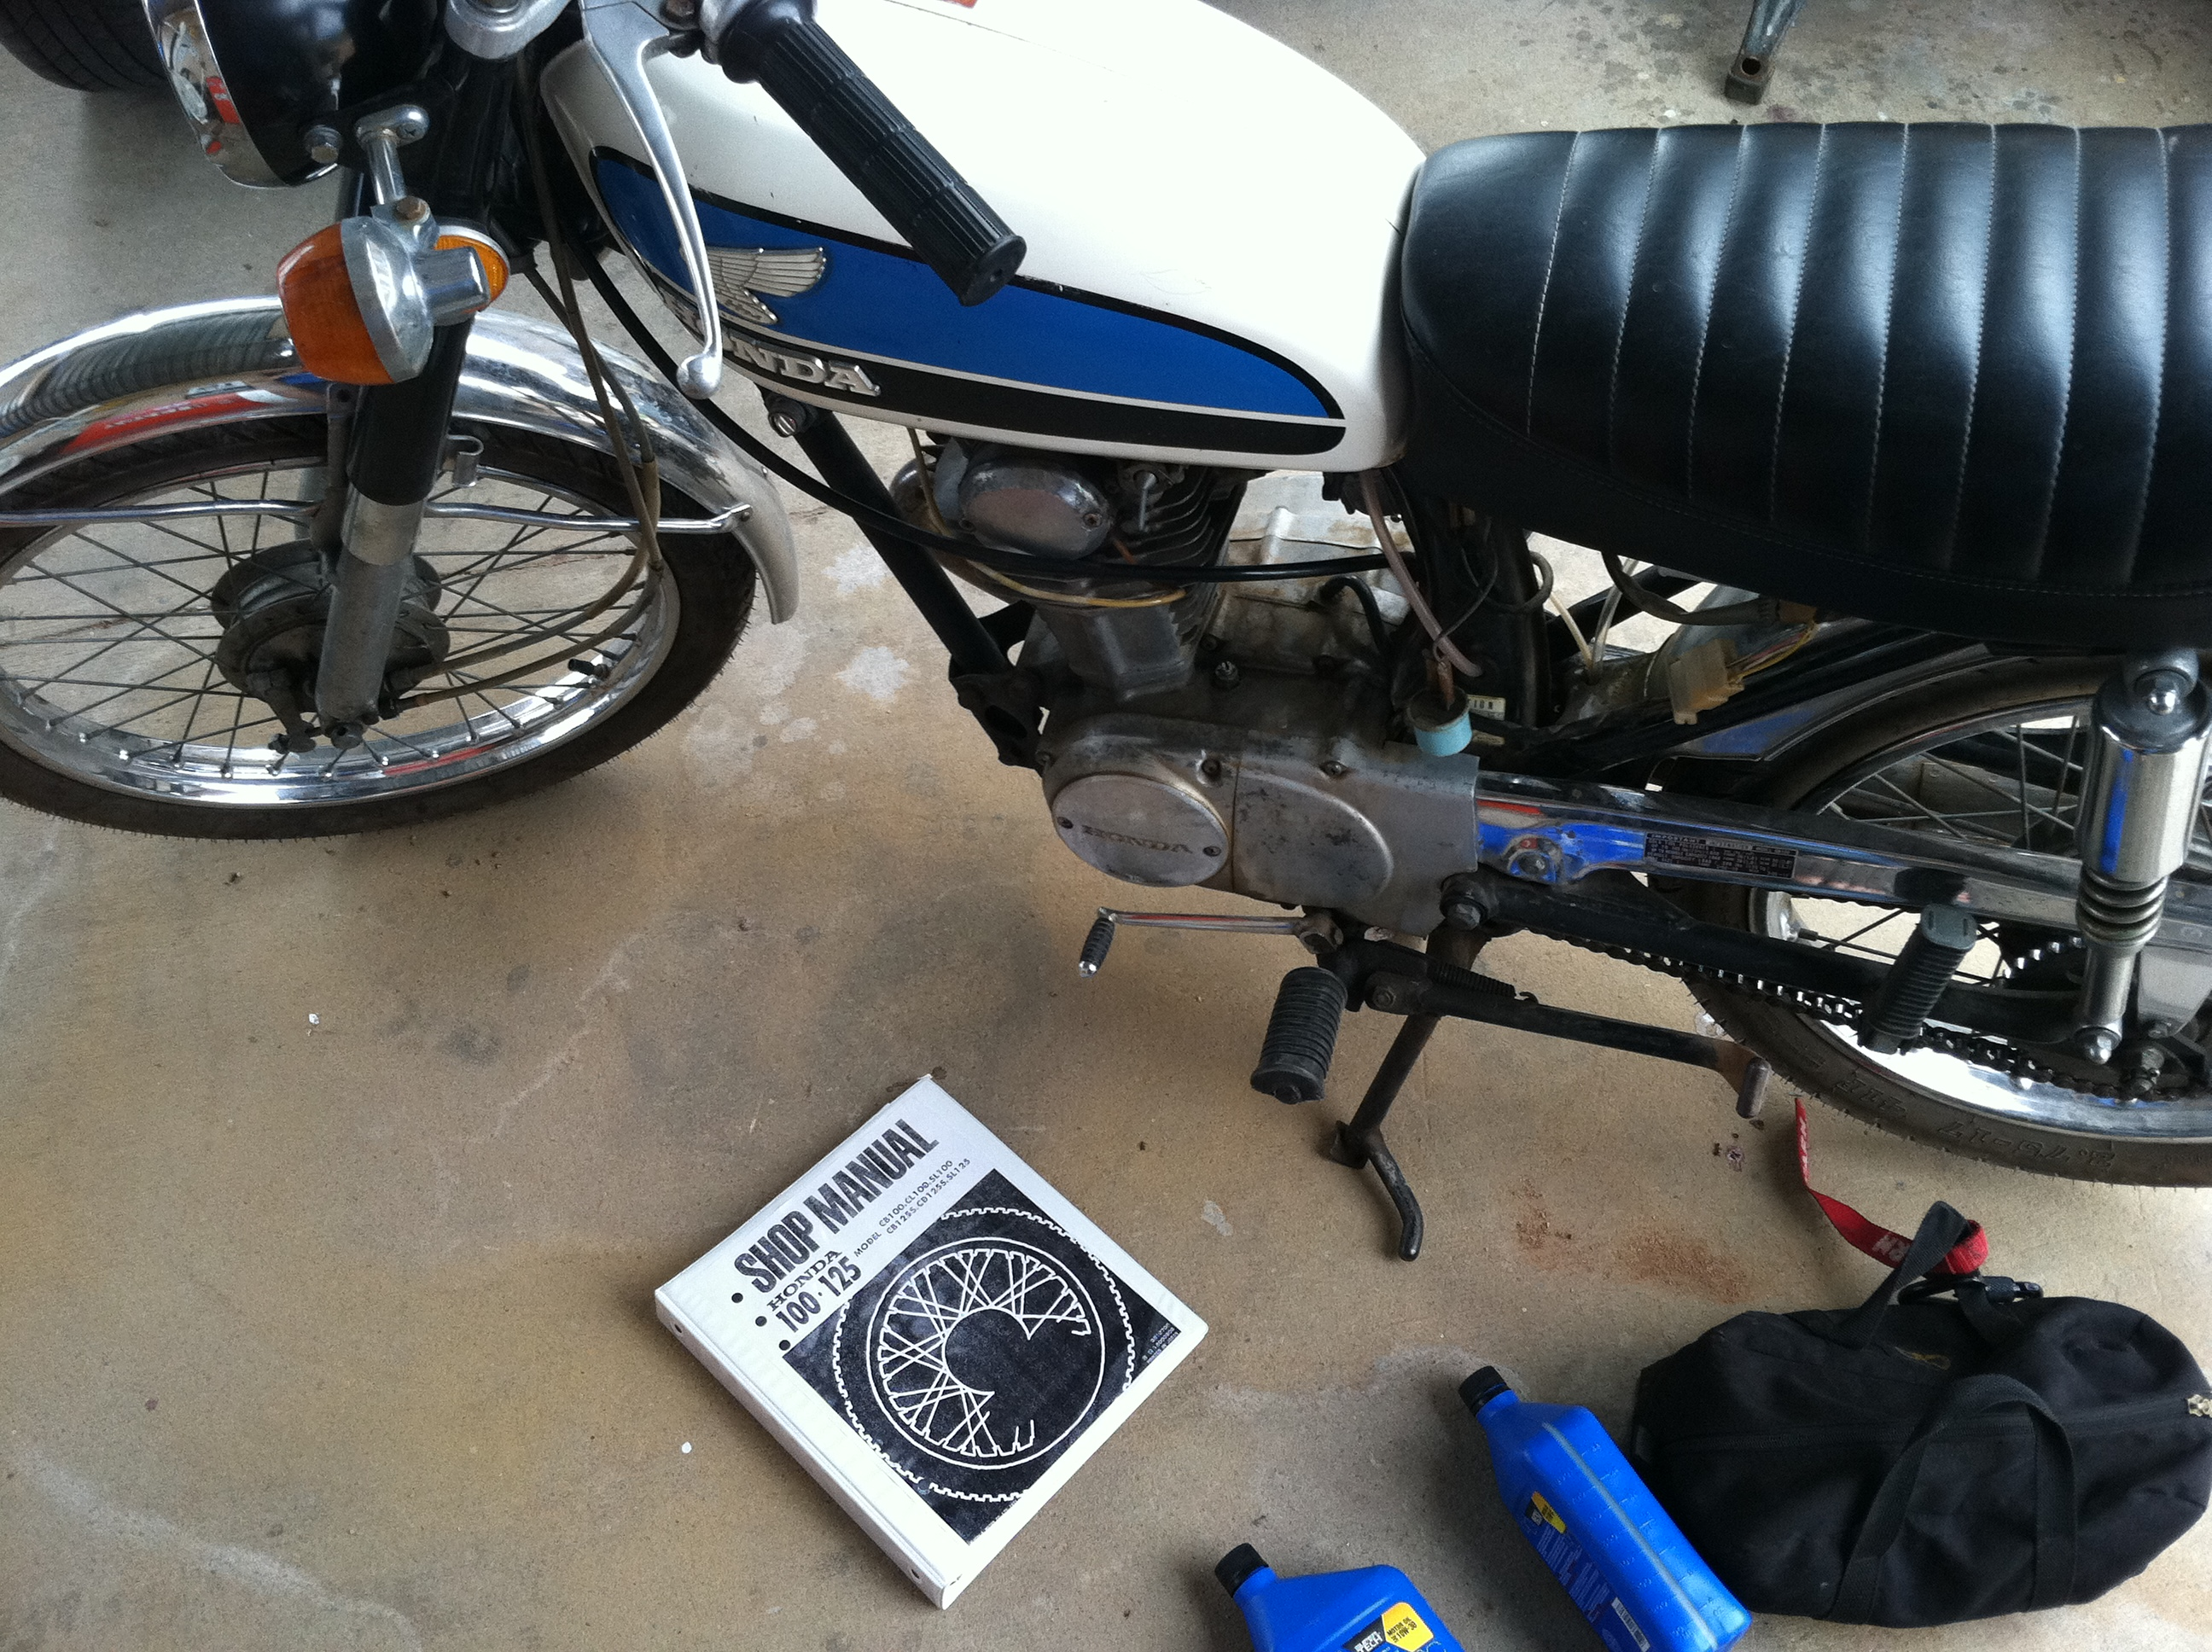 Change the oil in a vintage Honda CB100